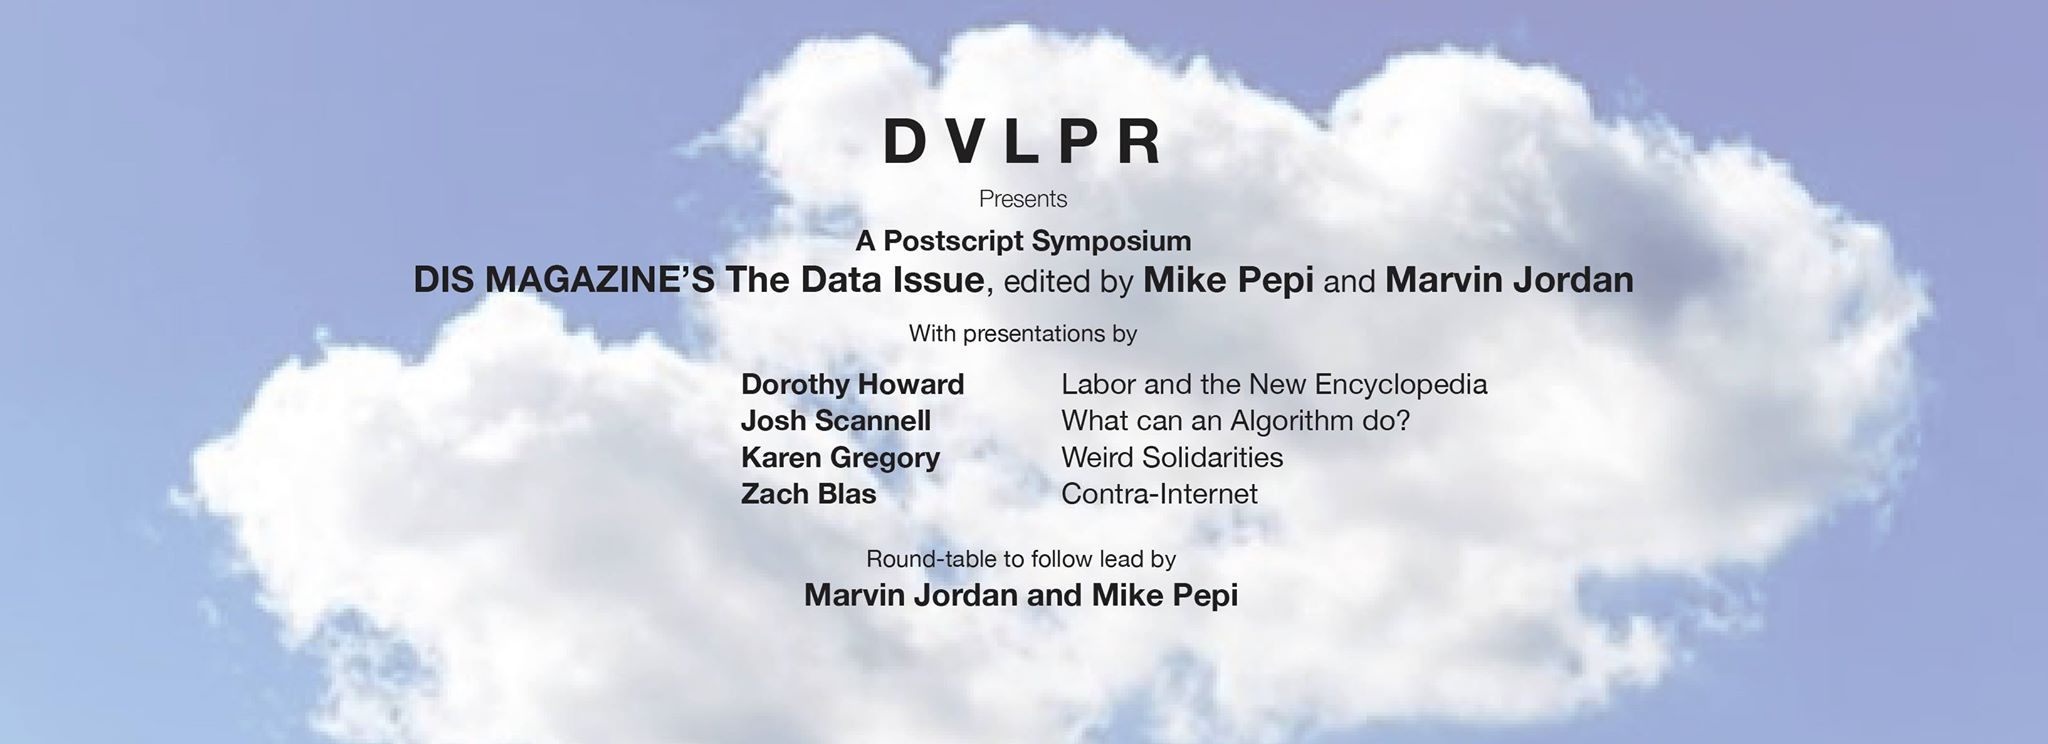 DVLPR and DIS Magazine: A Postscript on The Data Issue